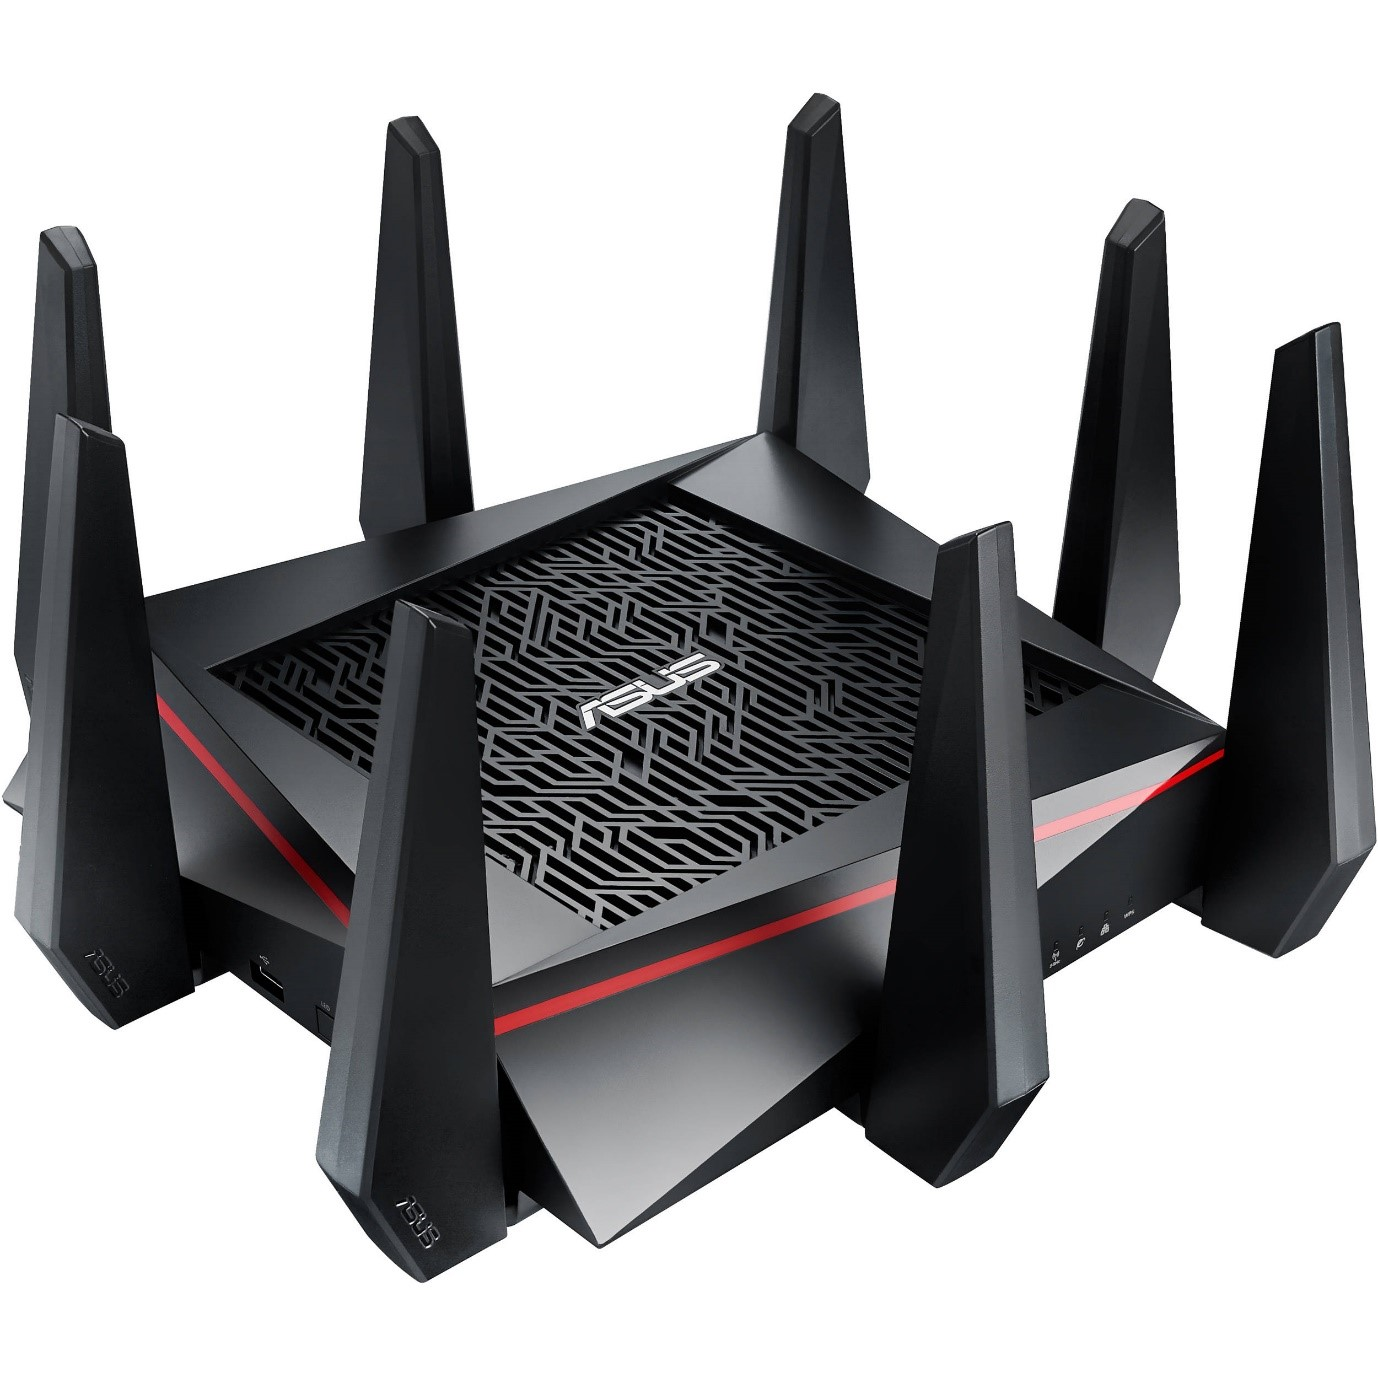 Asus RT-AC5300 For The Best Internet Speed - Image 1